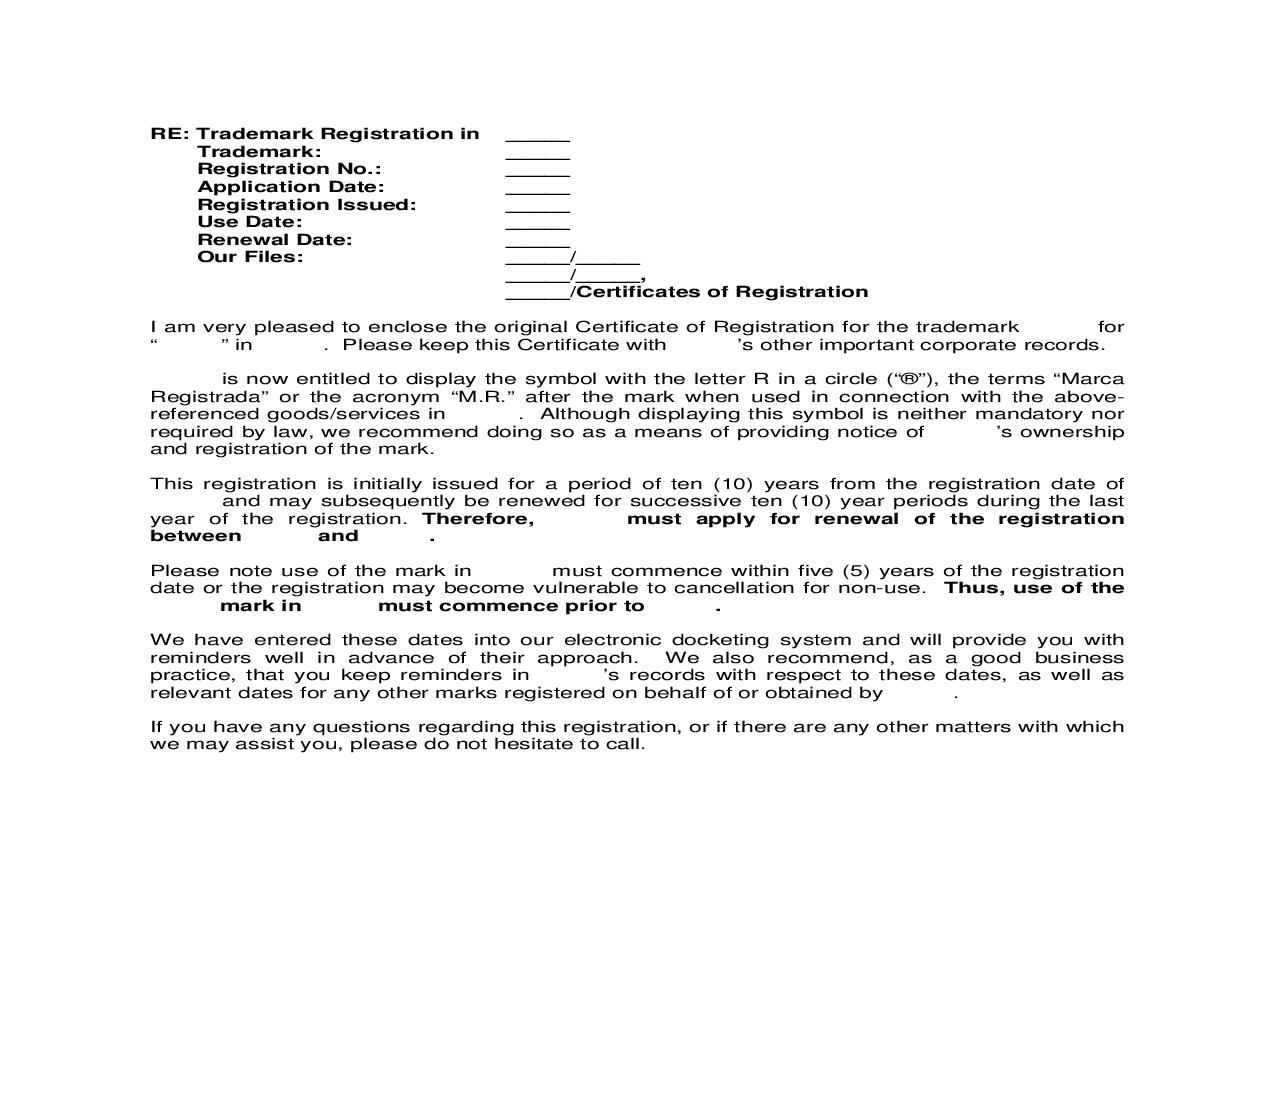 Foreign Registration Brazil Letter to Client enclosing Trademark Registration   Pdf Doc Docx   Cooley IP Forms